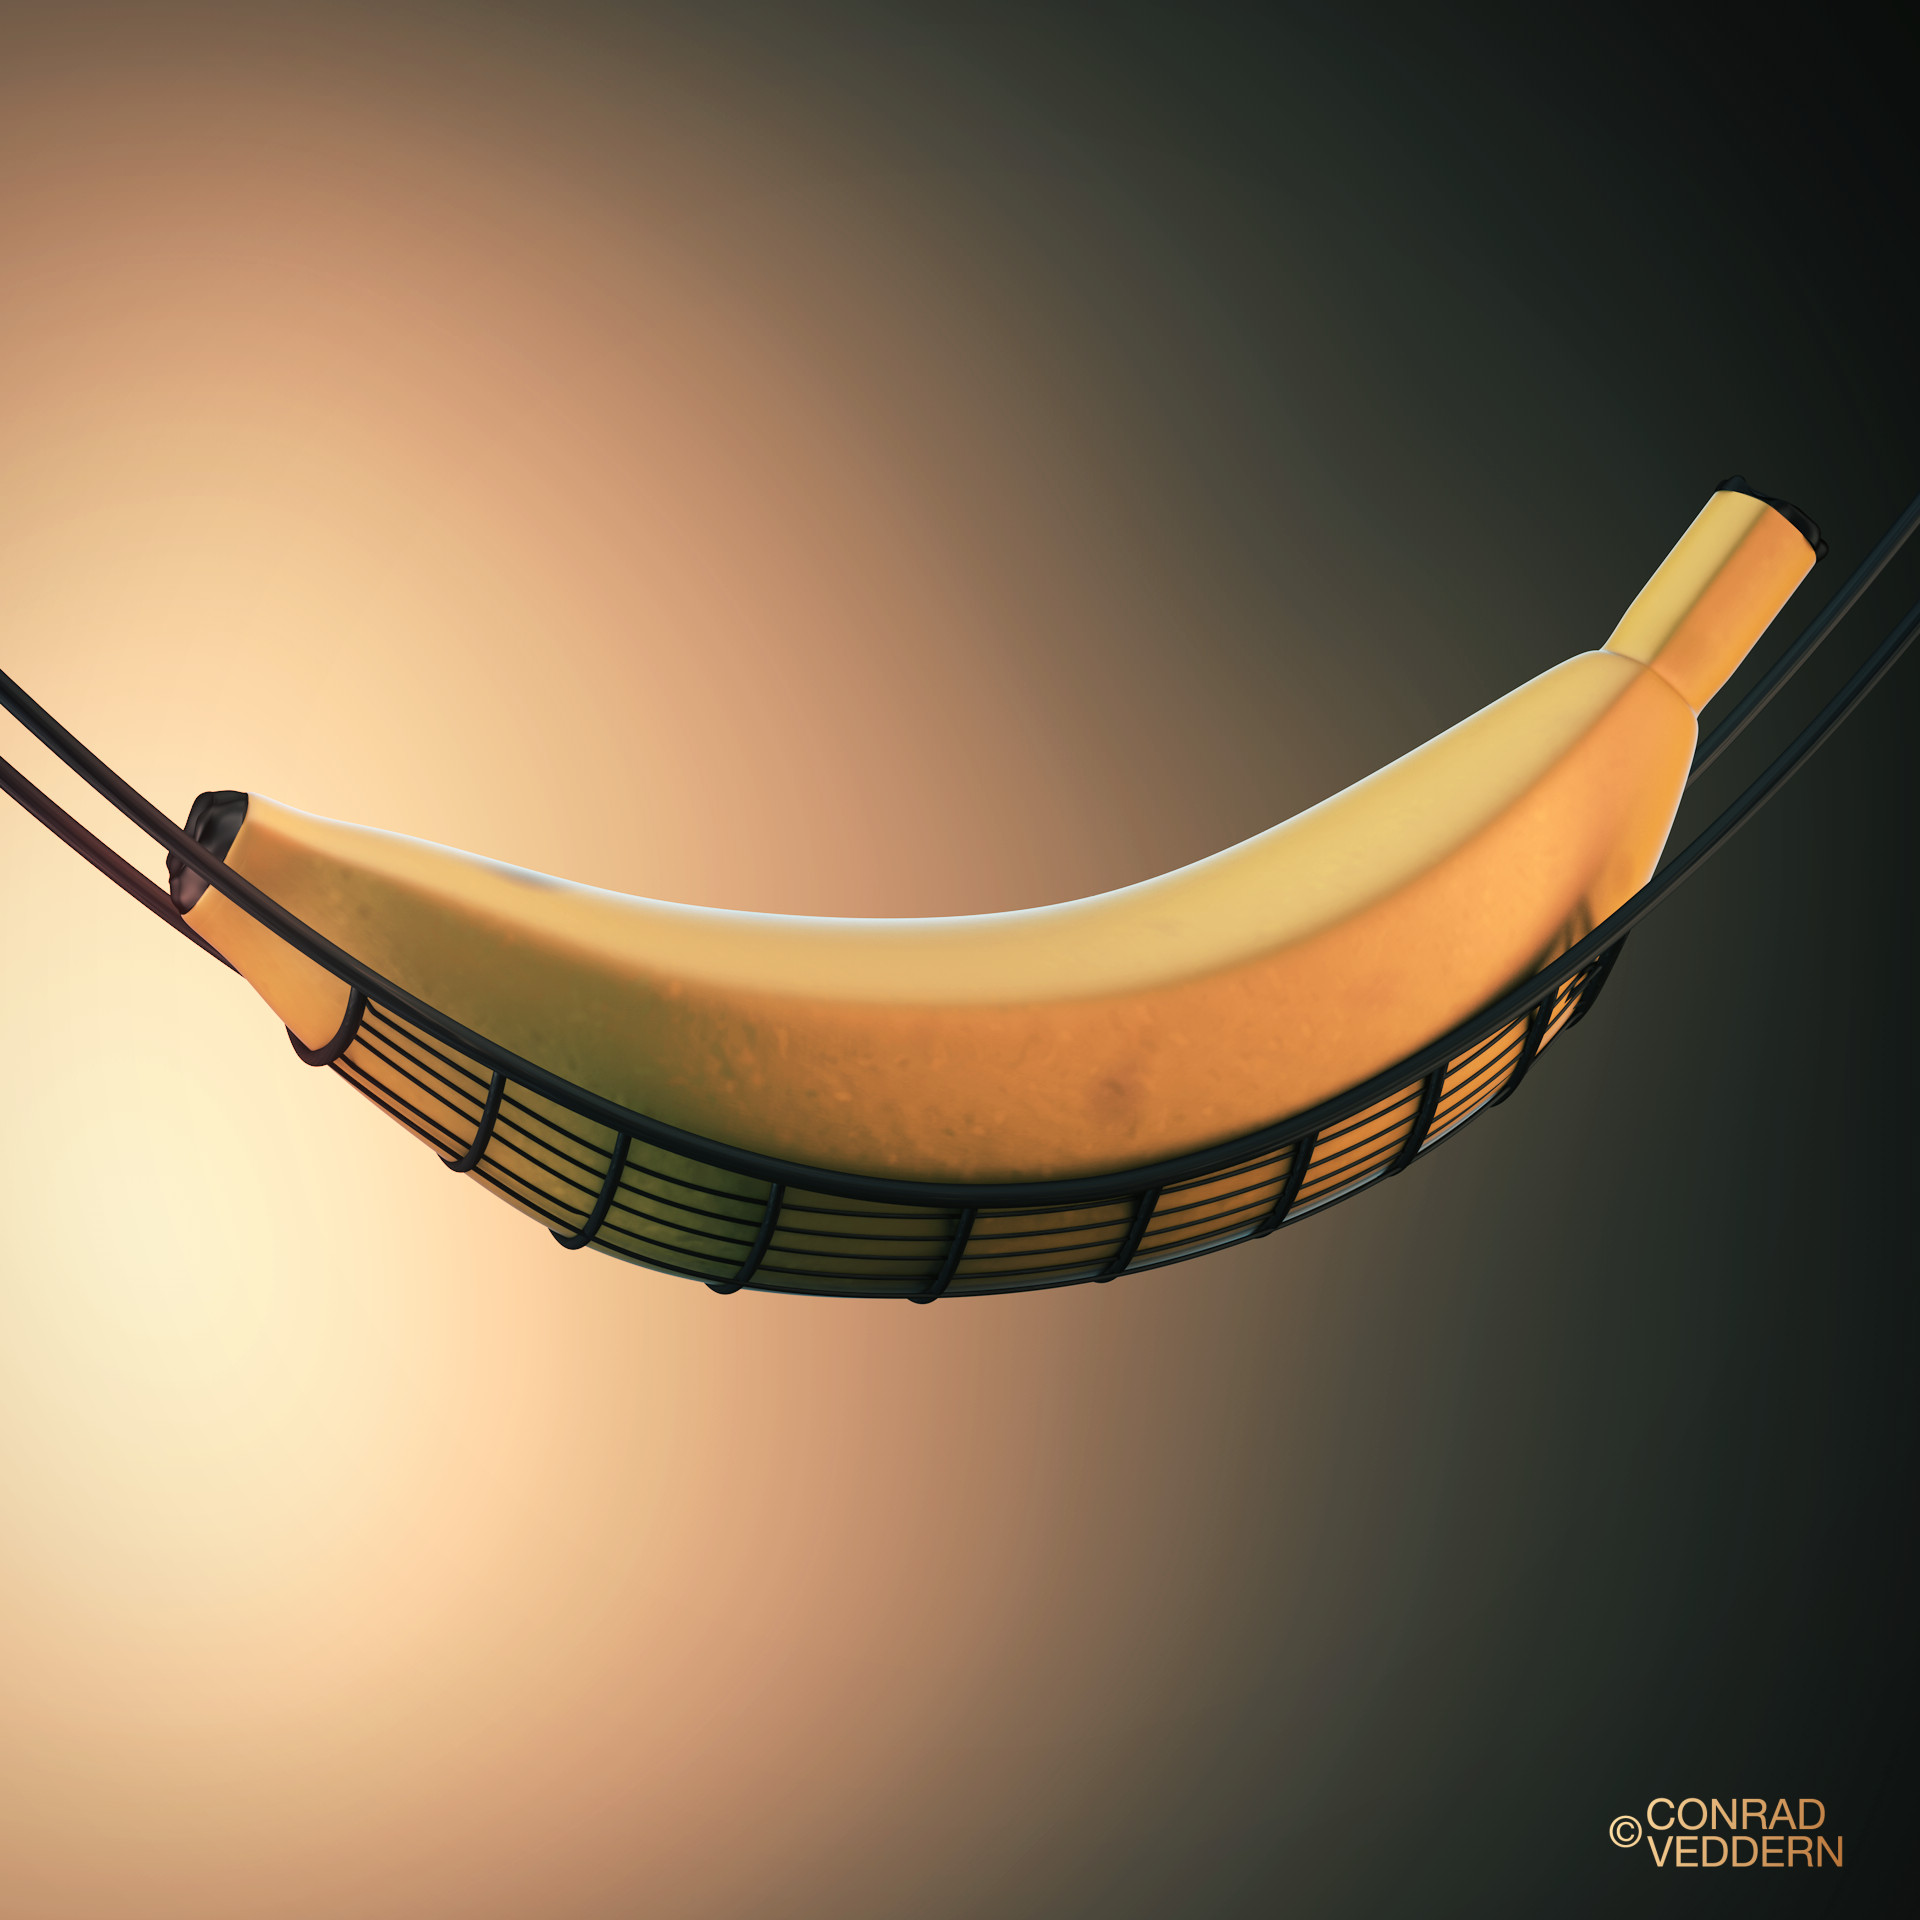 213  banana hammock    punny humour made in c4d  artstation    213  banana hammock  conrad veddern  rh   artstation